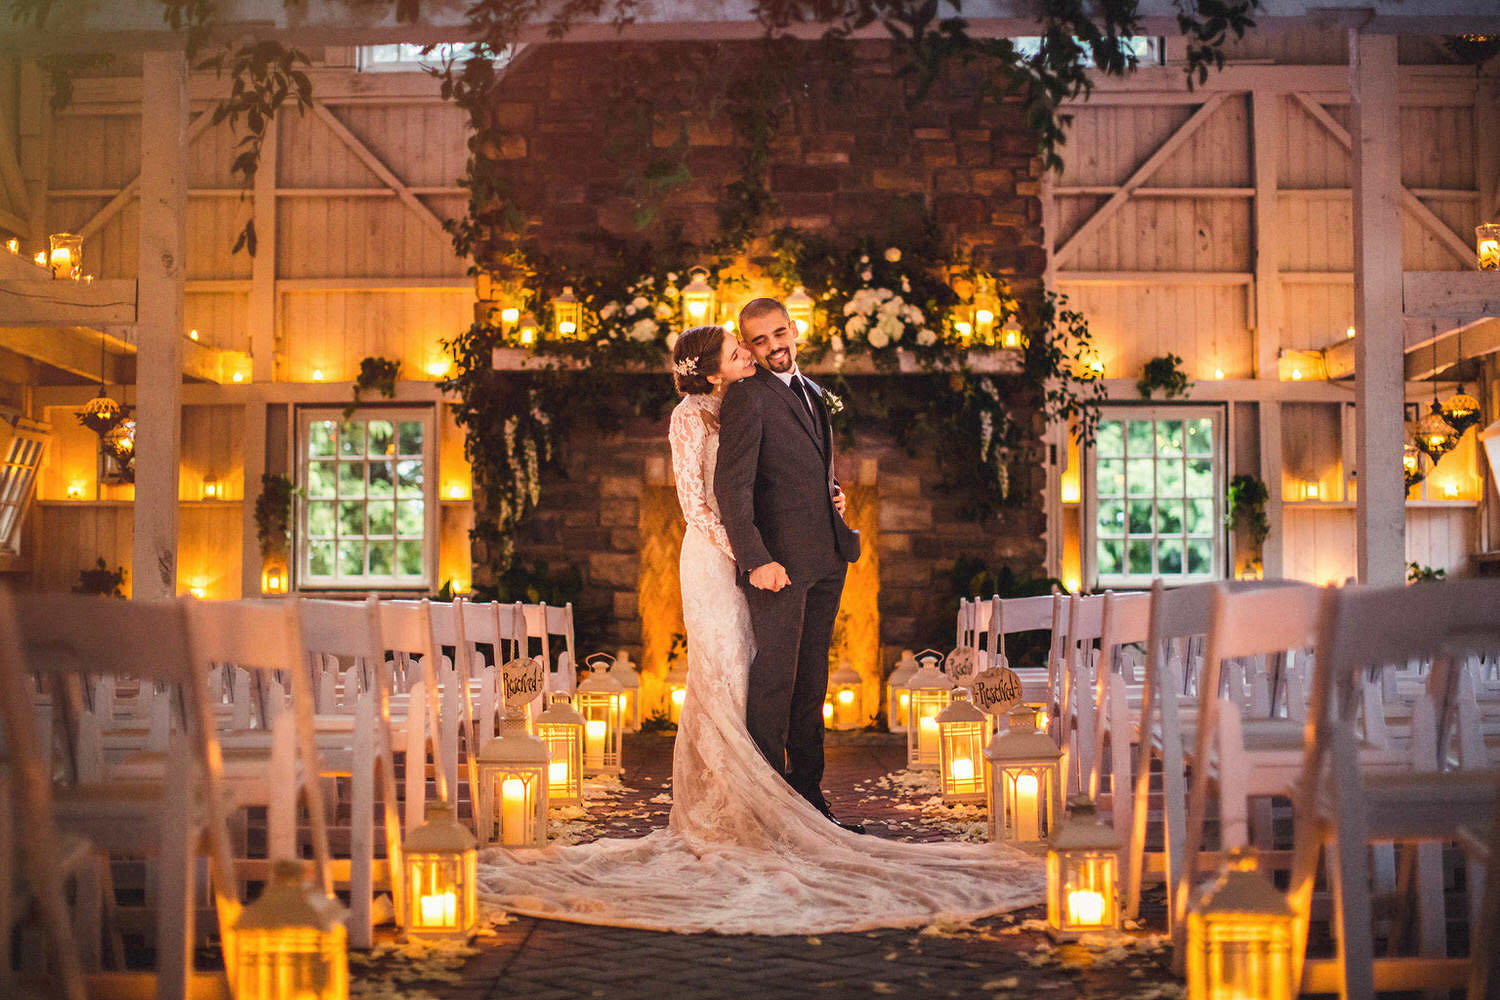 Candlelit wedding ceremony